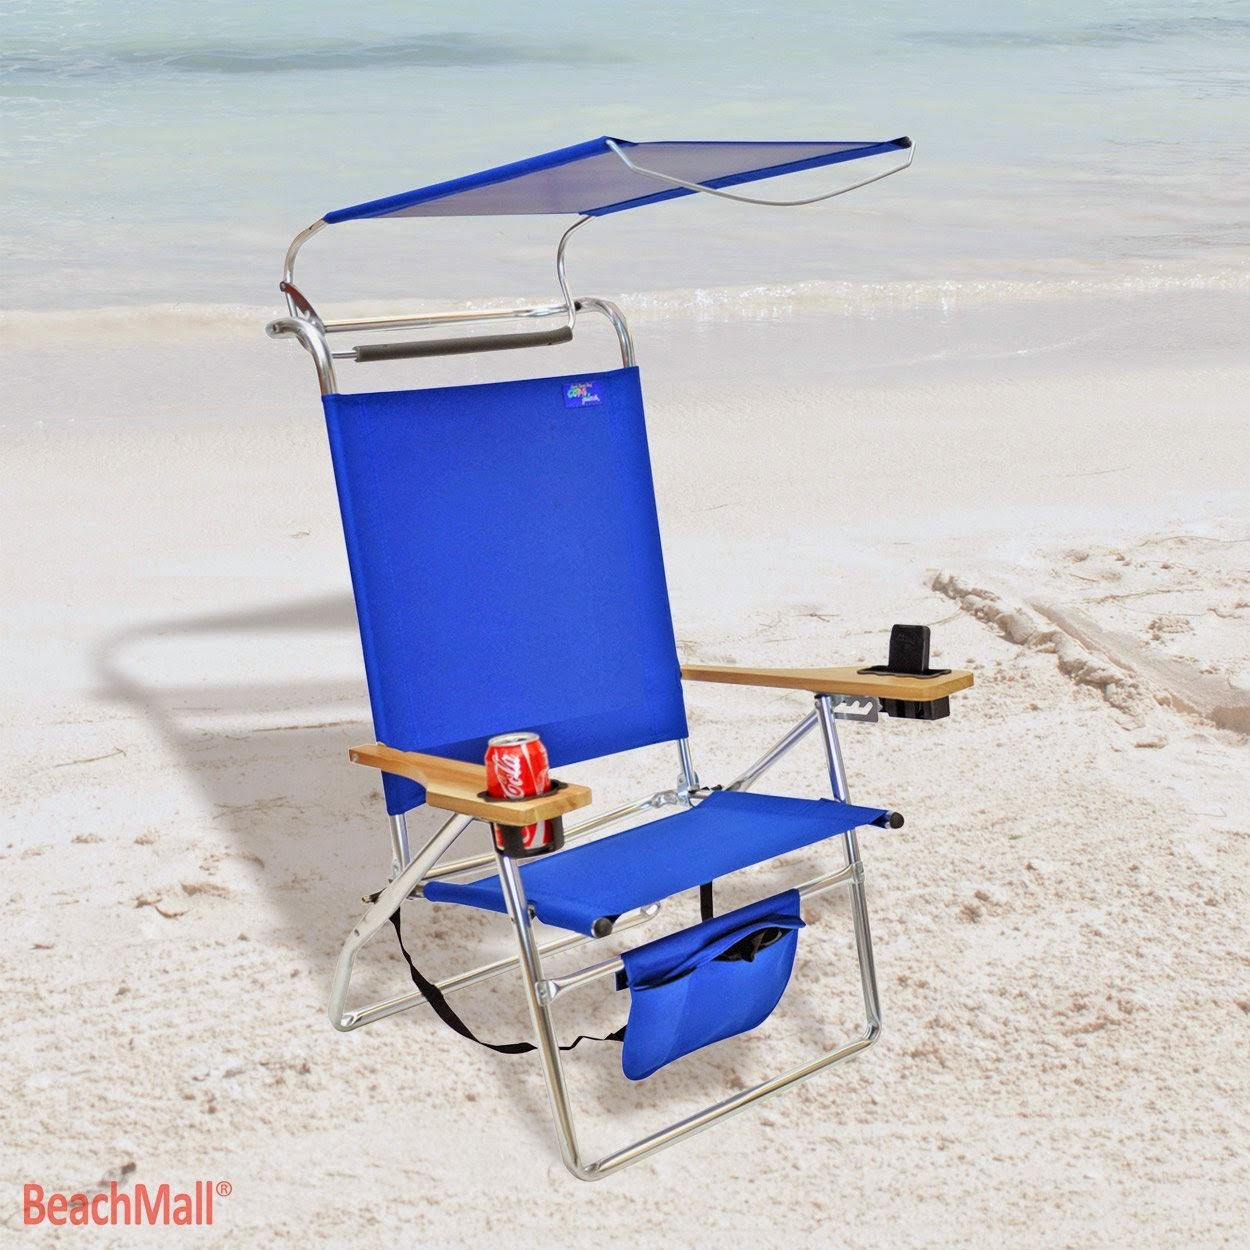 Best Inexpensive Beach Chairs Outsunny Fishing Chair Cheap With Canopy